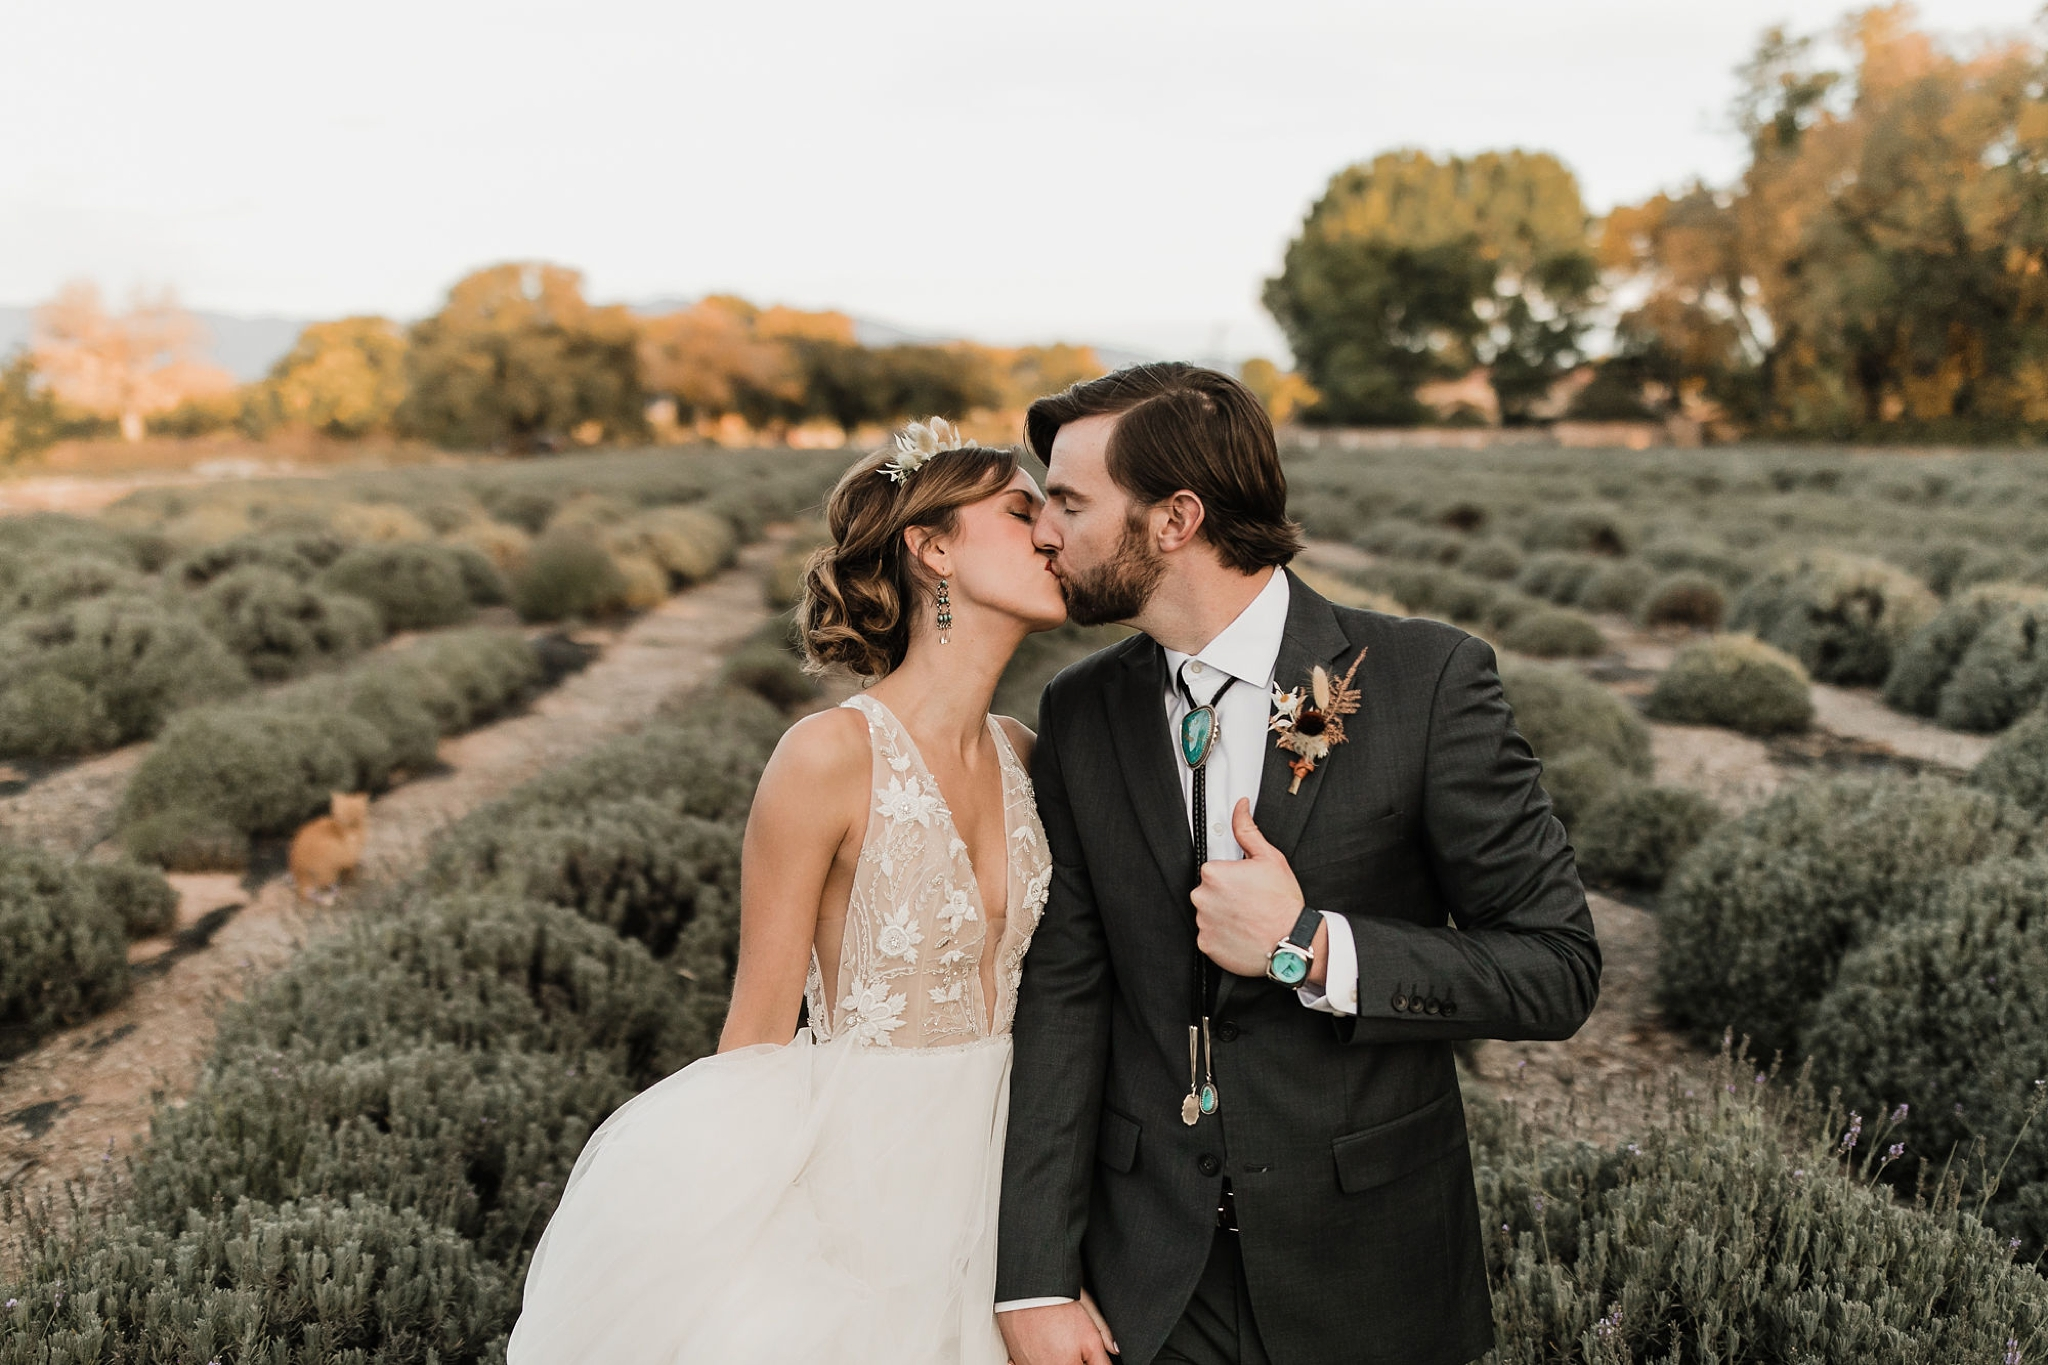 Alicia+lucia+photography+-+albuquerque+wedding+photographer+-+santa+fe+wedding+photography+-+new+mexico+wedding+photographer+-+new+mexico+wedding+-+albuquerque+wedding+-+rocky+mountain+bride+-+los+poblanos+wedding_0097.jpg